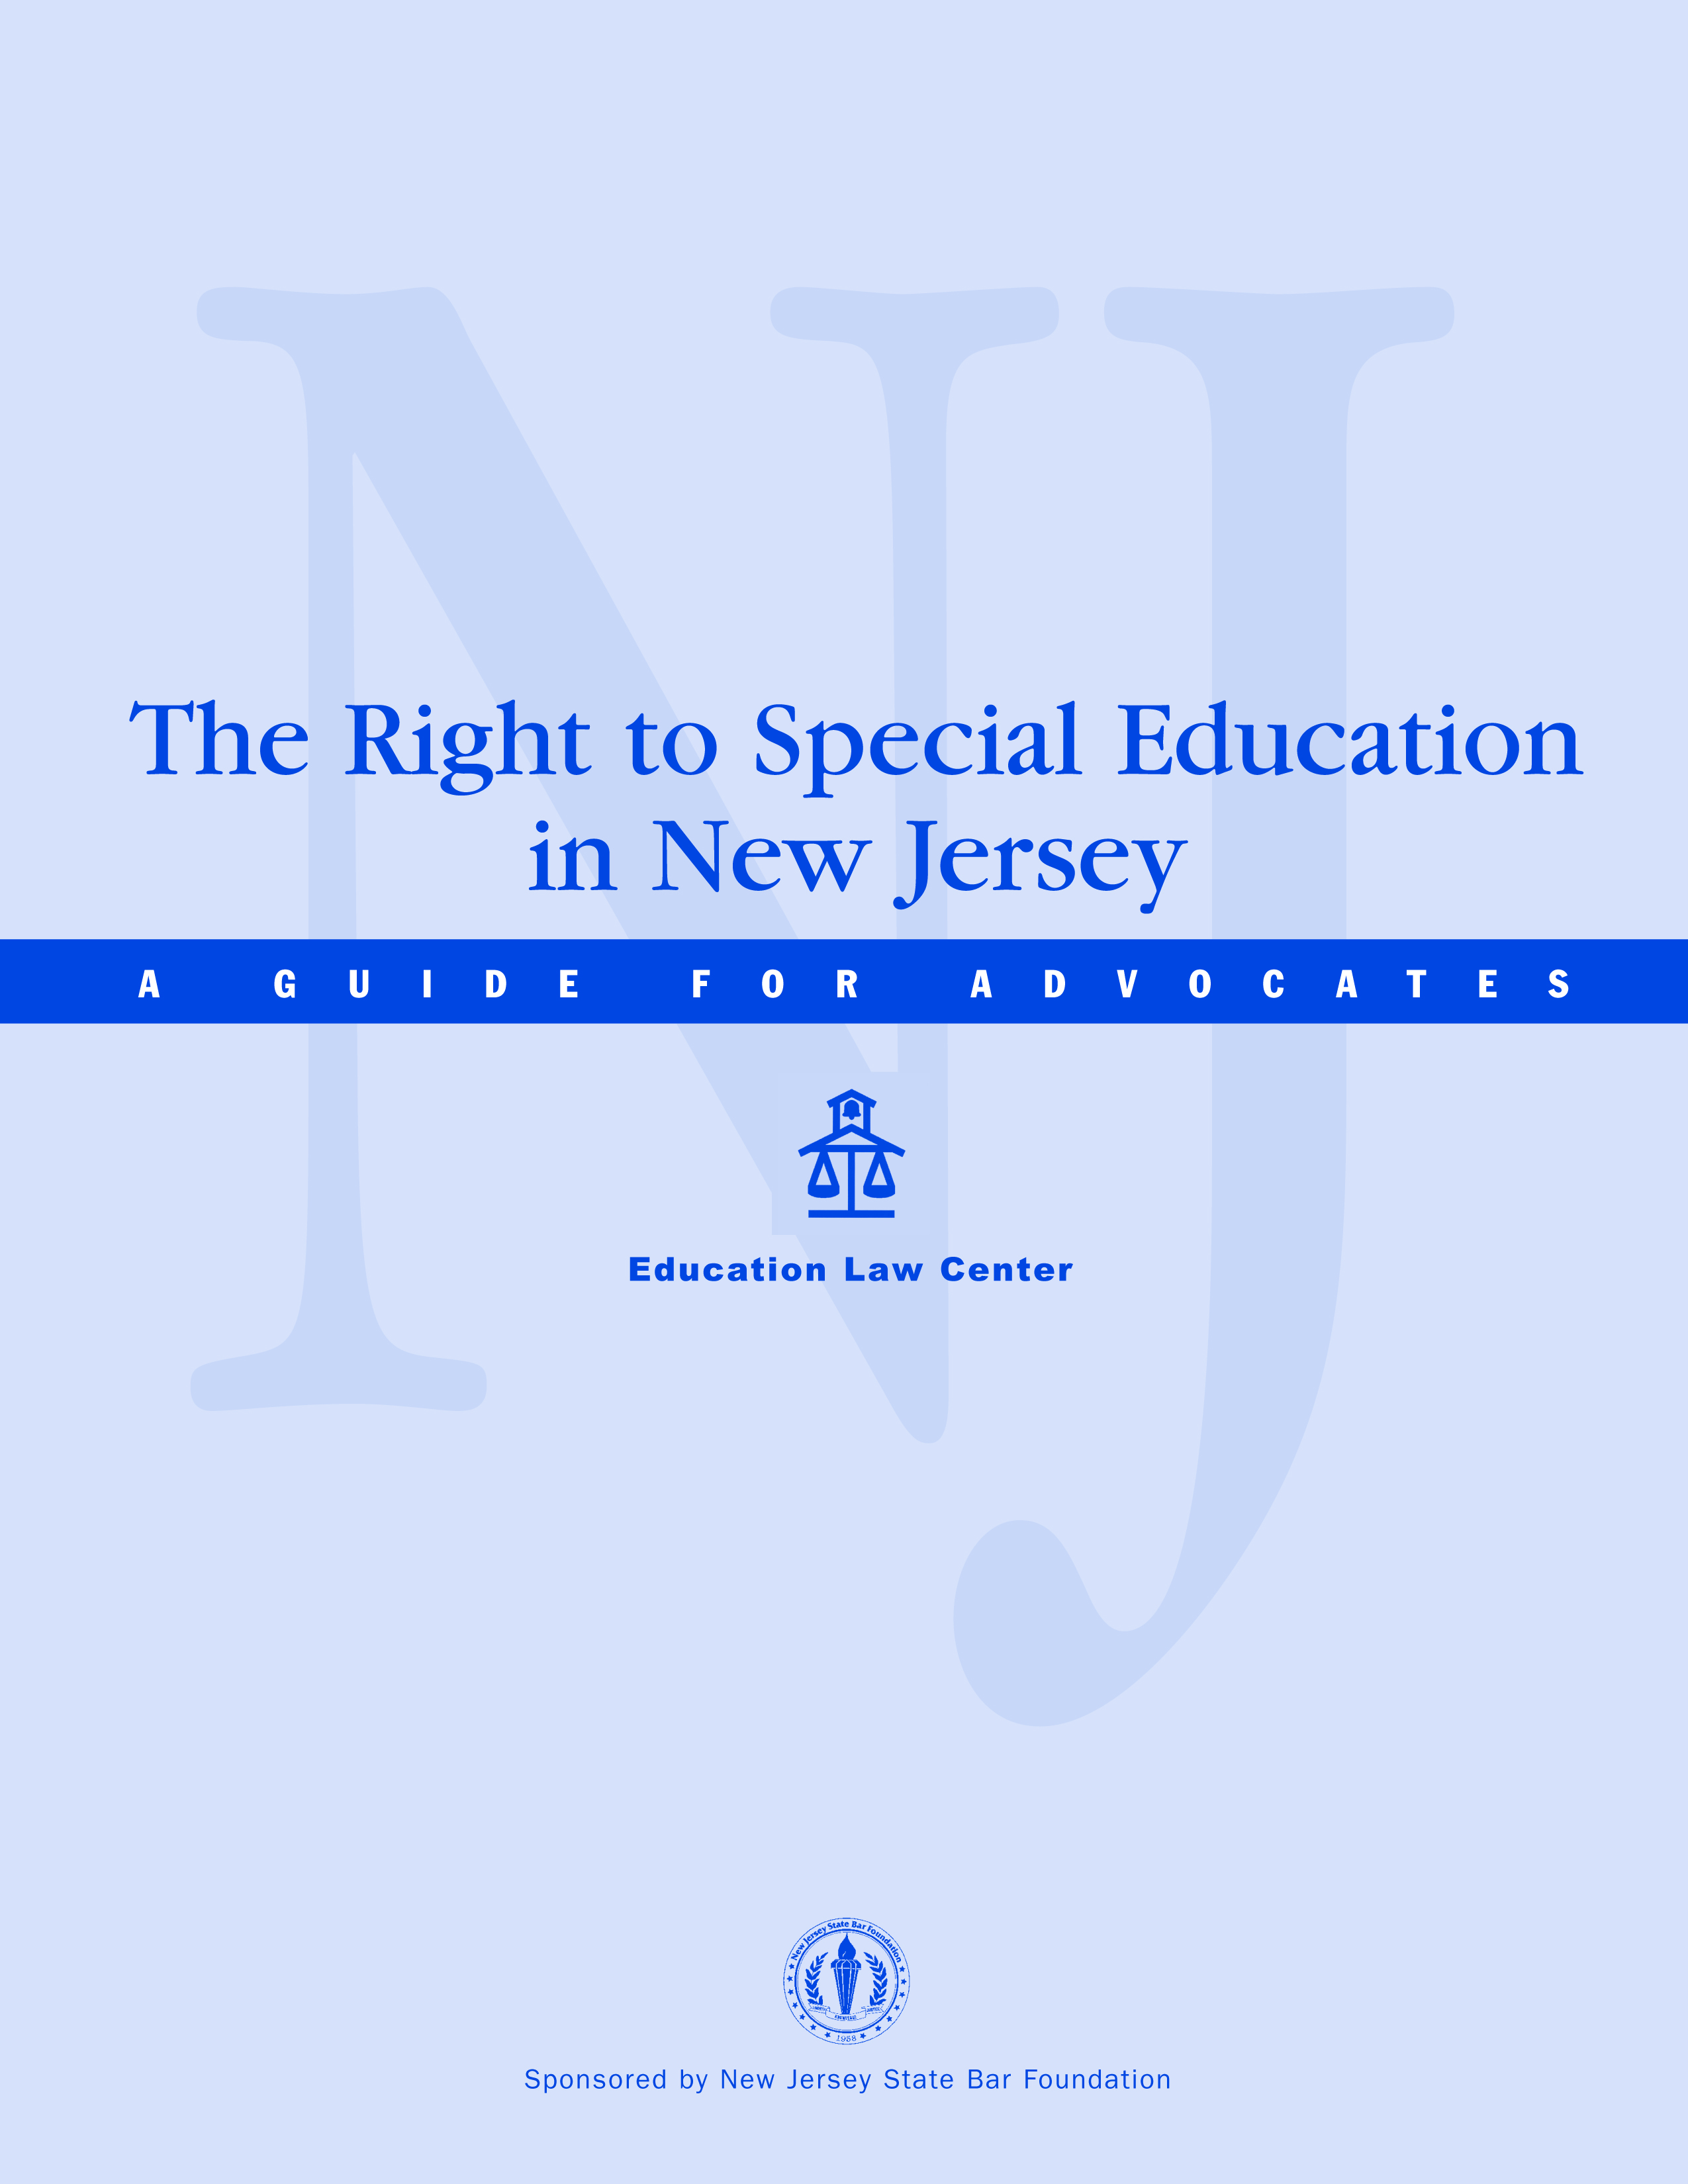 The Right to Special Education in New Jersey